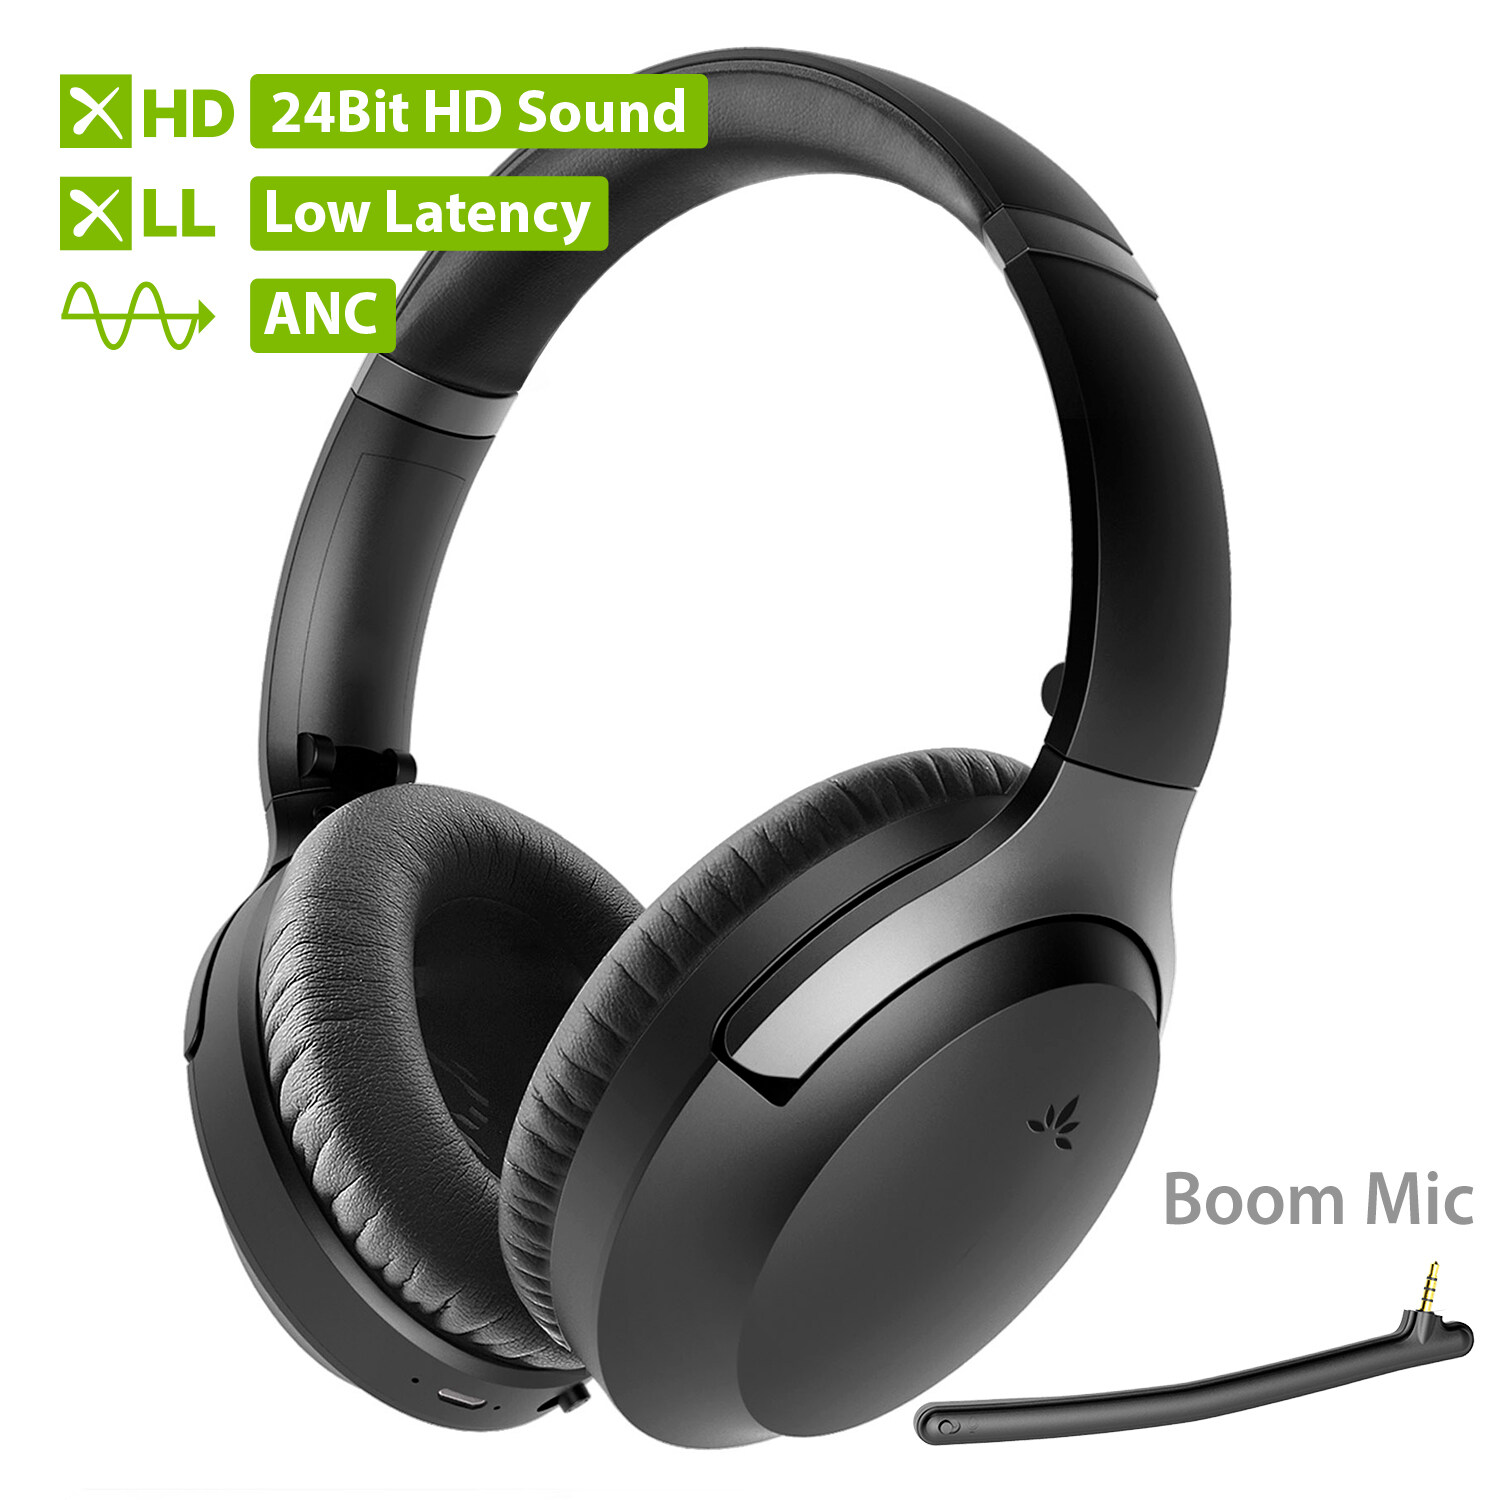 [2020] Avantree Aptx-Hd 24 Bit Hi-Fi Bluetooth 5.0 Active Noise Cancelling Headphones, Wireless Over Ear Anc Headset With Boom Mic For Clear Phone Calls, Aptx Low Latency For Tv Pc Computer - Aria Pro.